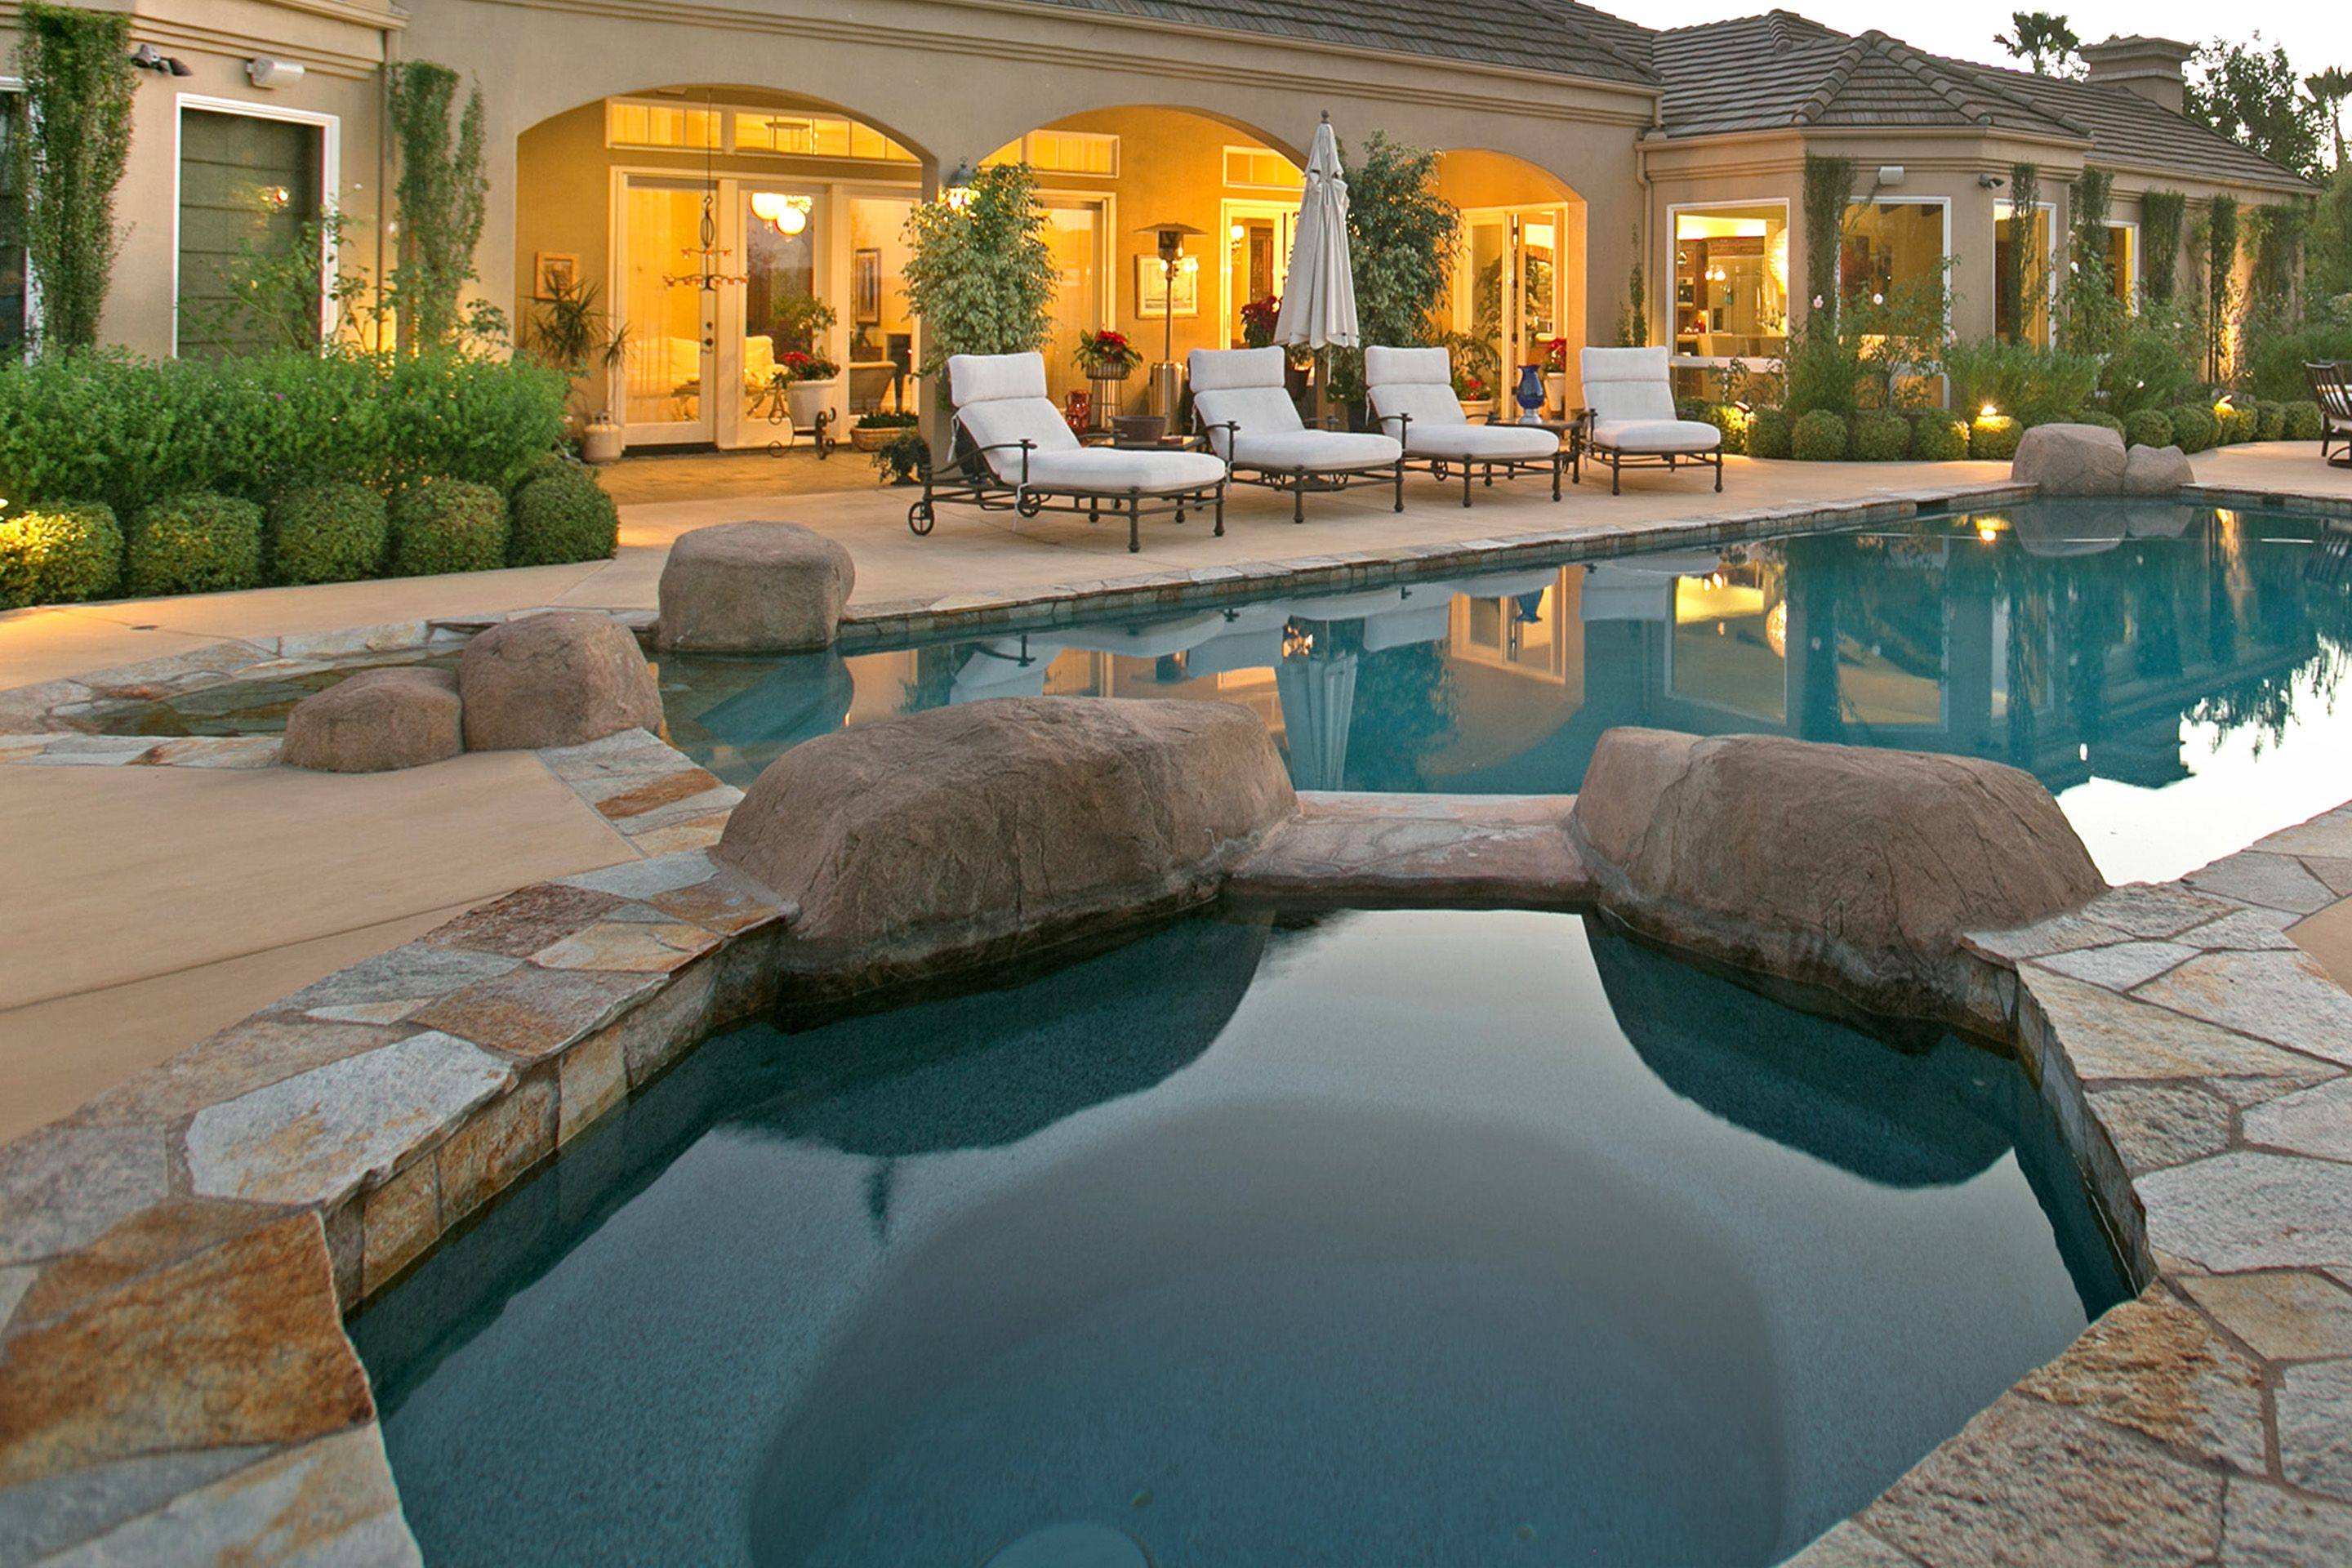 New Home - Old | Spa pool, Pool, Indoor outdoor living on Outdoor Living Spa id=25341